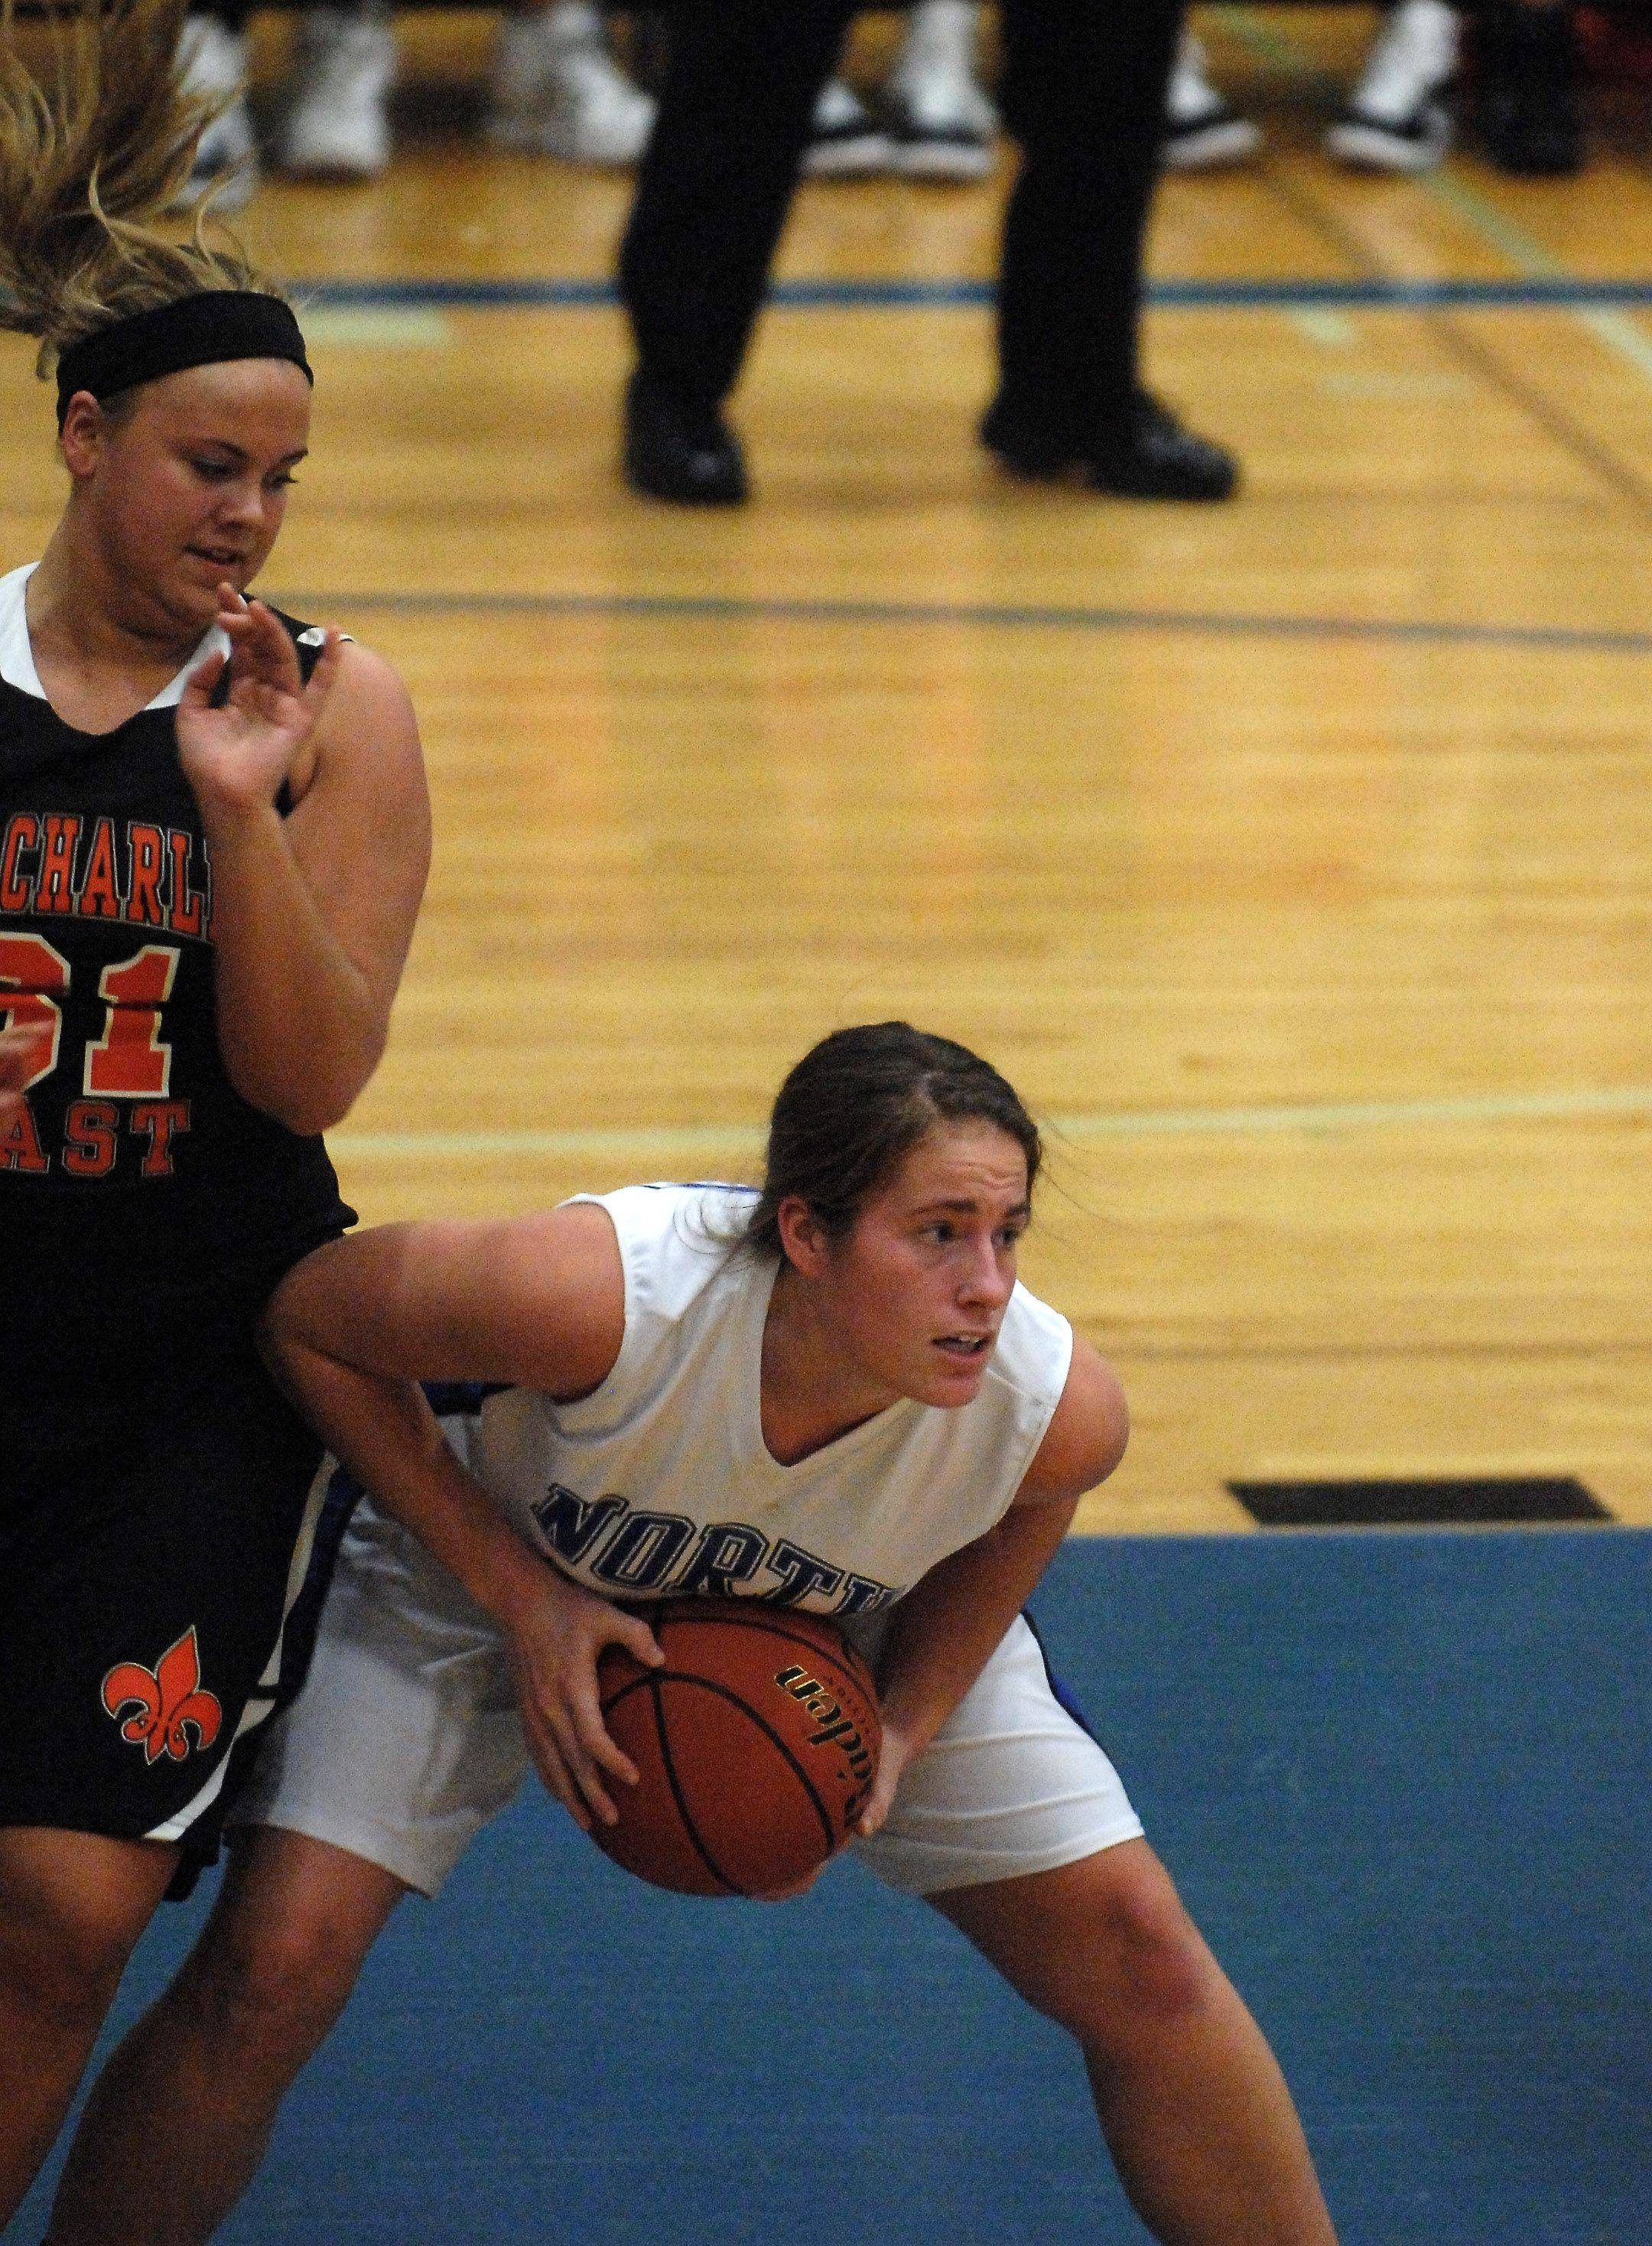 Images from the St. Charles East at St. Charles North girls basketball game Friday, December 3, 2010.